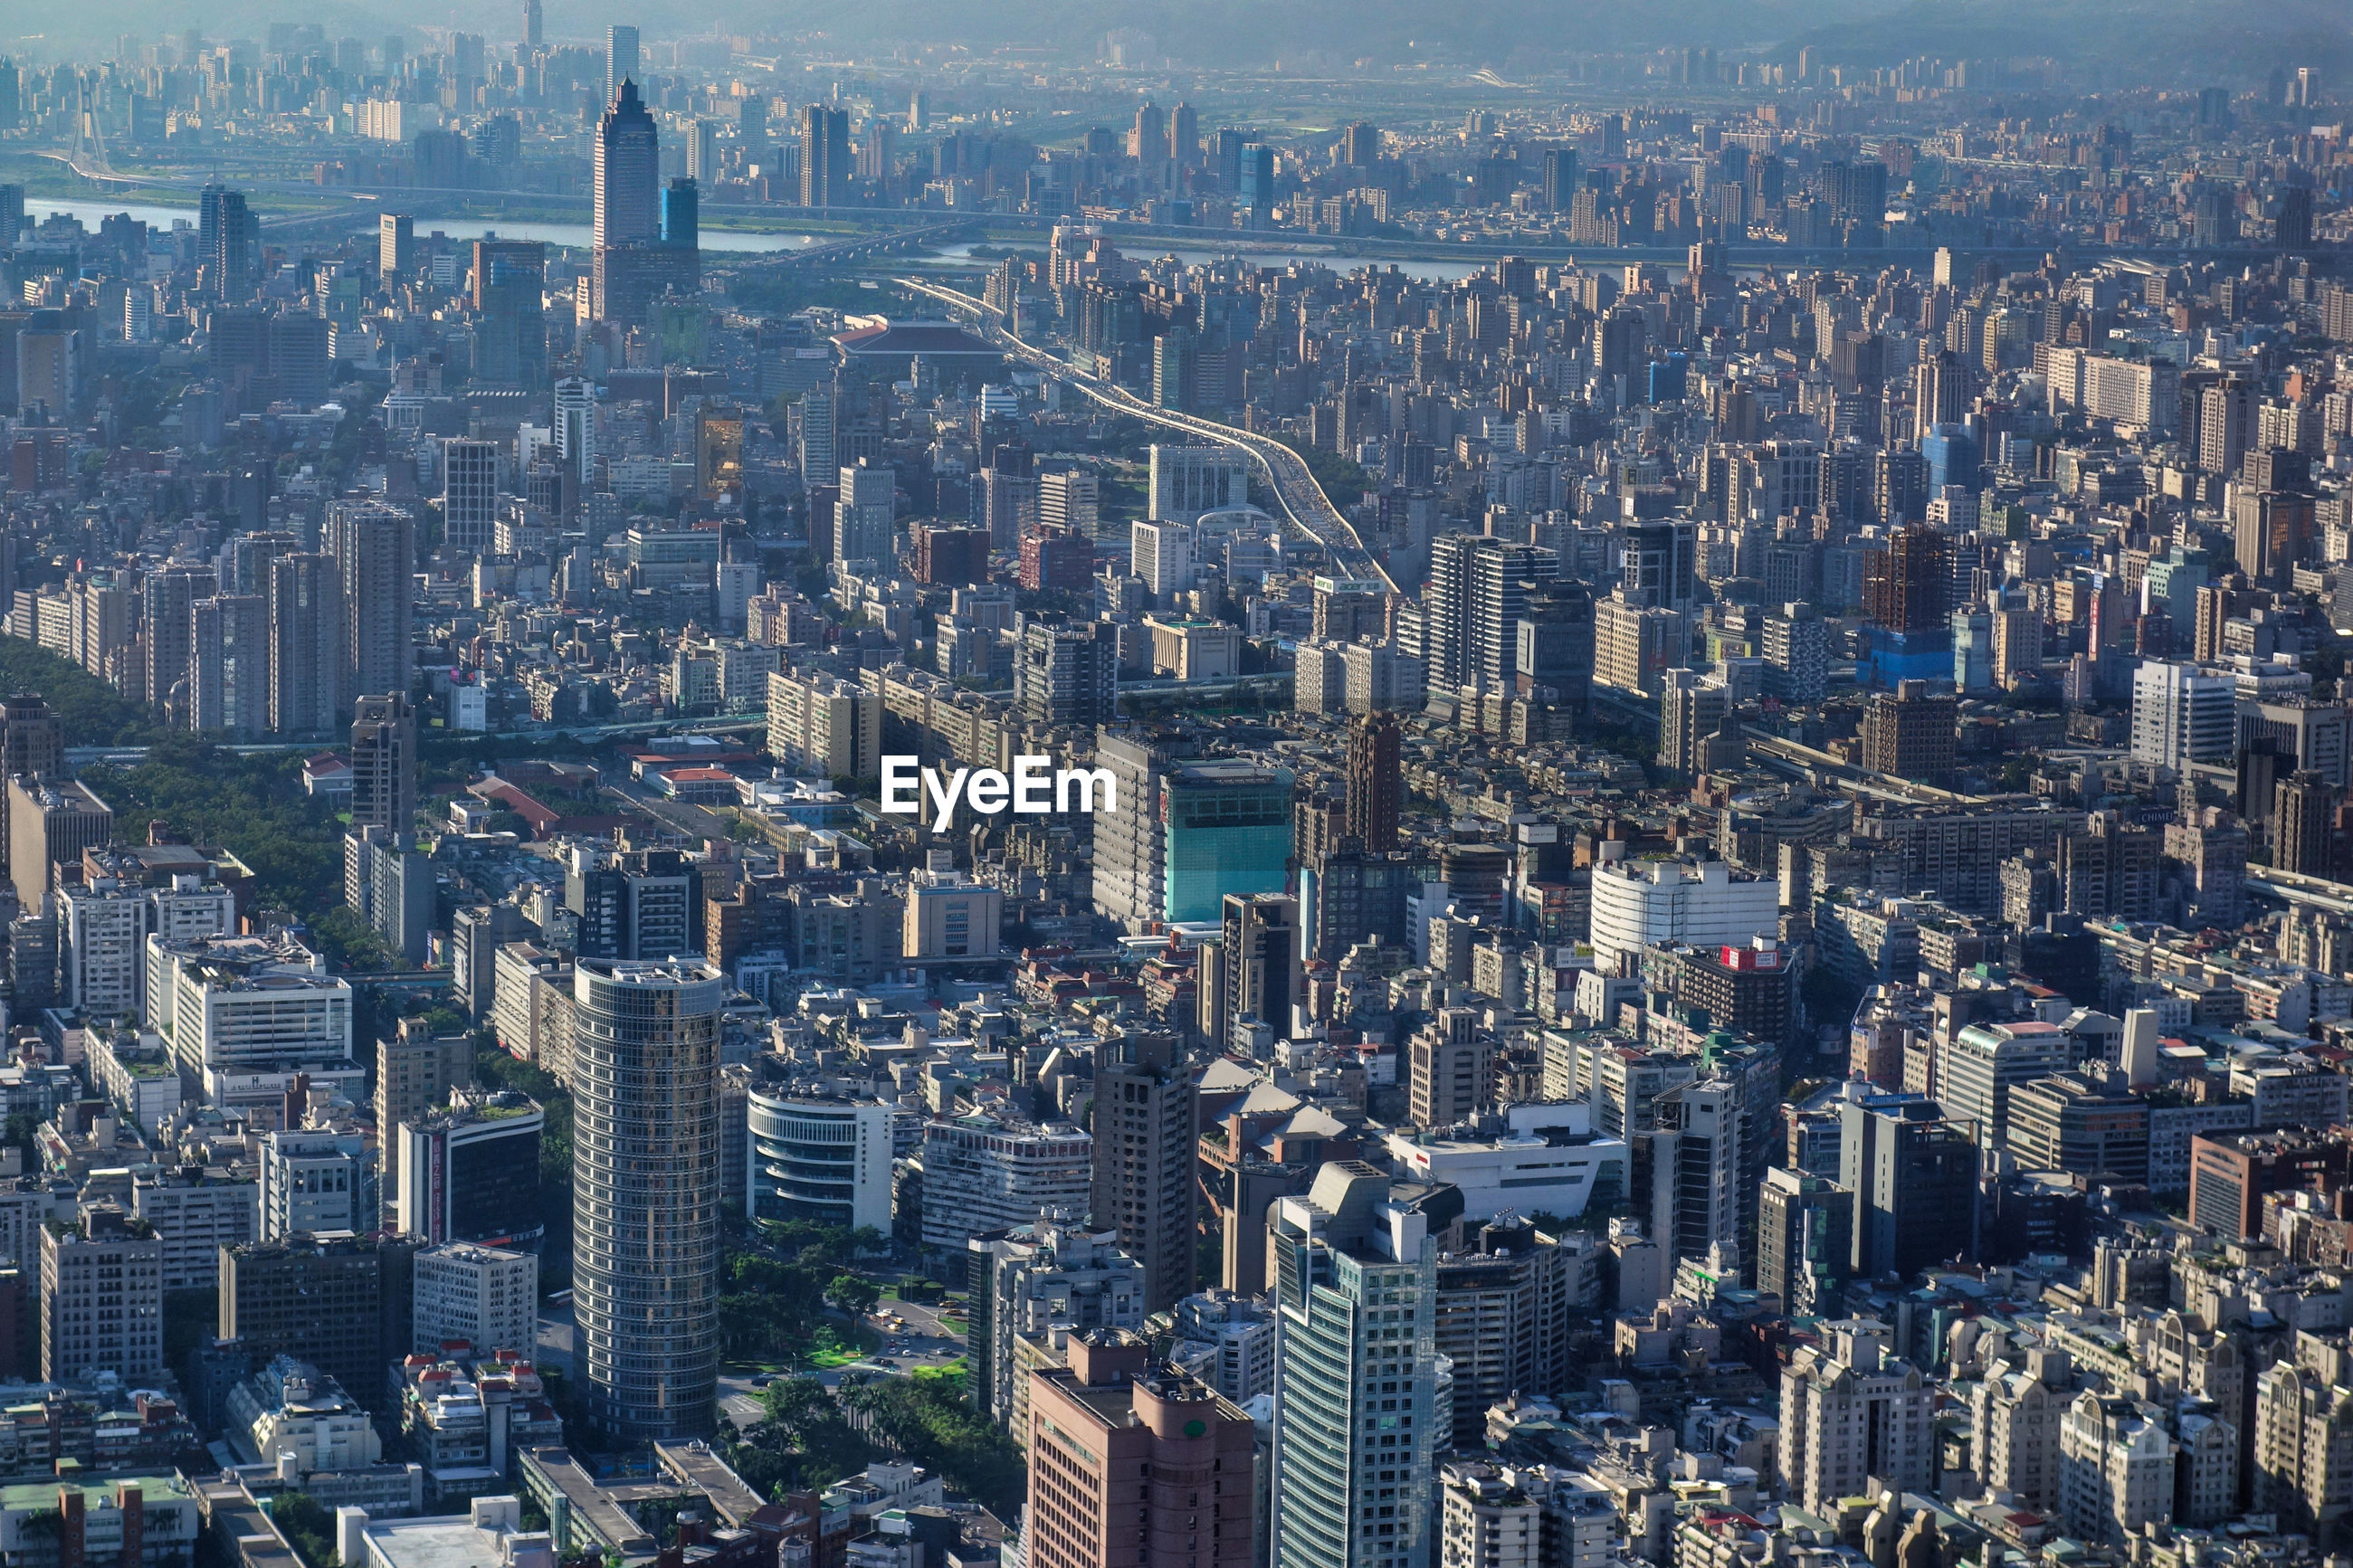 Overlook of taipei with hundreds of skyscrapers